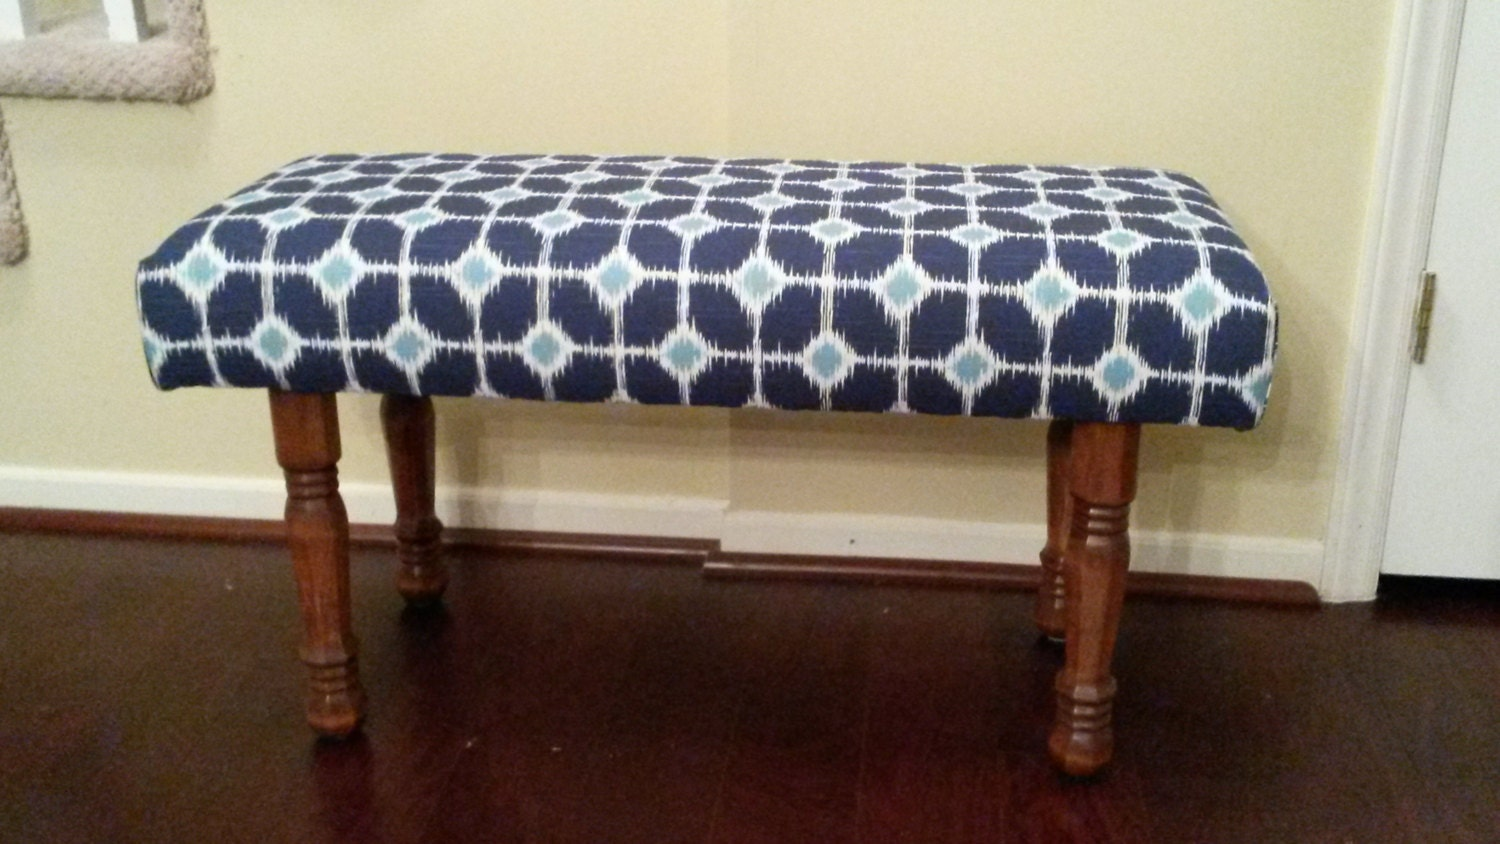 Upholstered bench blue and white White upholstered bench